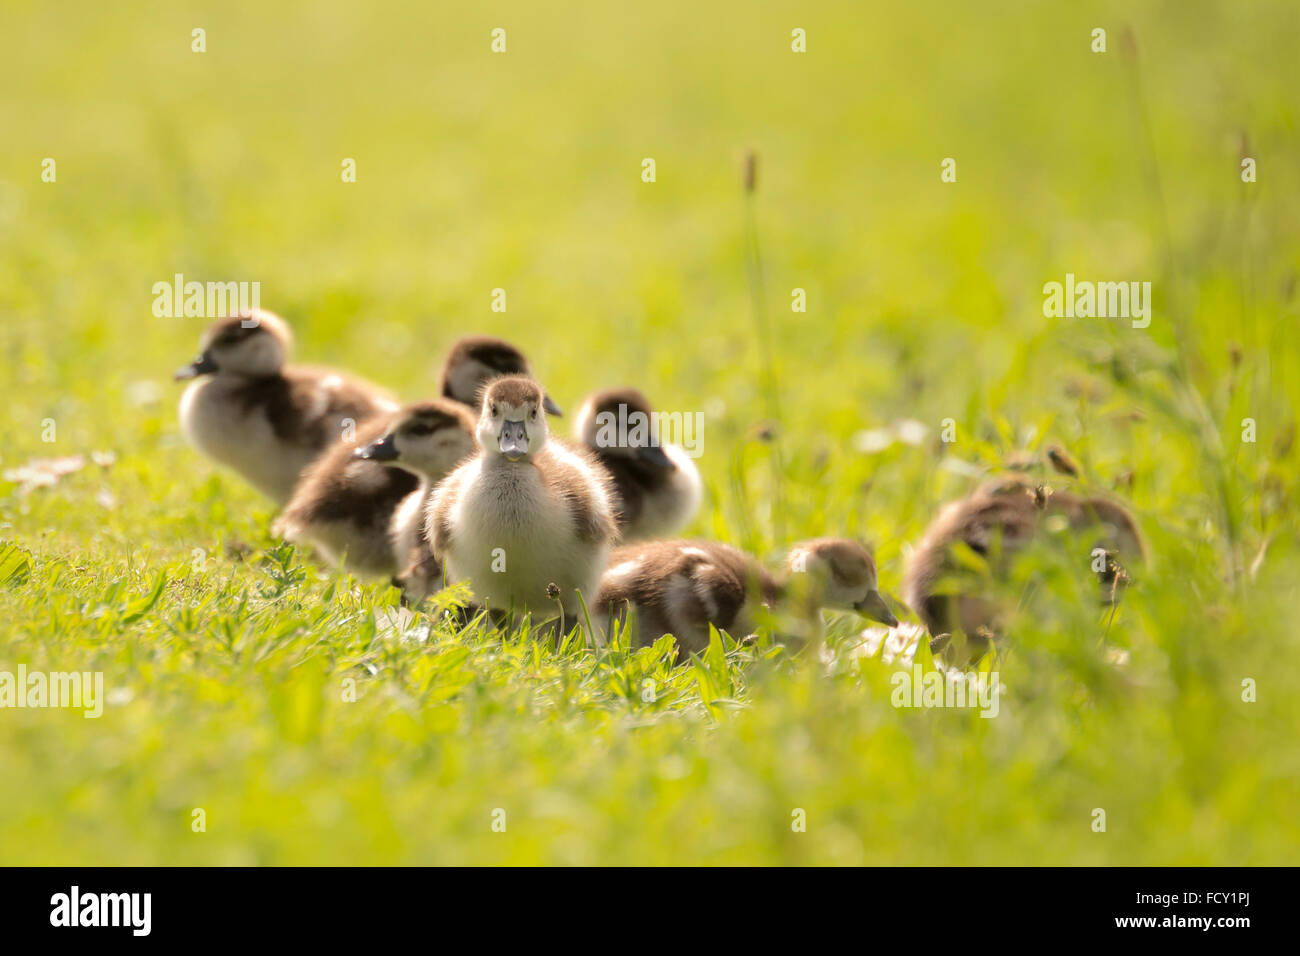 Group of Egyptian goose (Alopochen aegyptiacus) chicks exploring the world and walking a meadow with white flowers - Stock Image